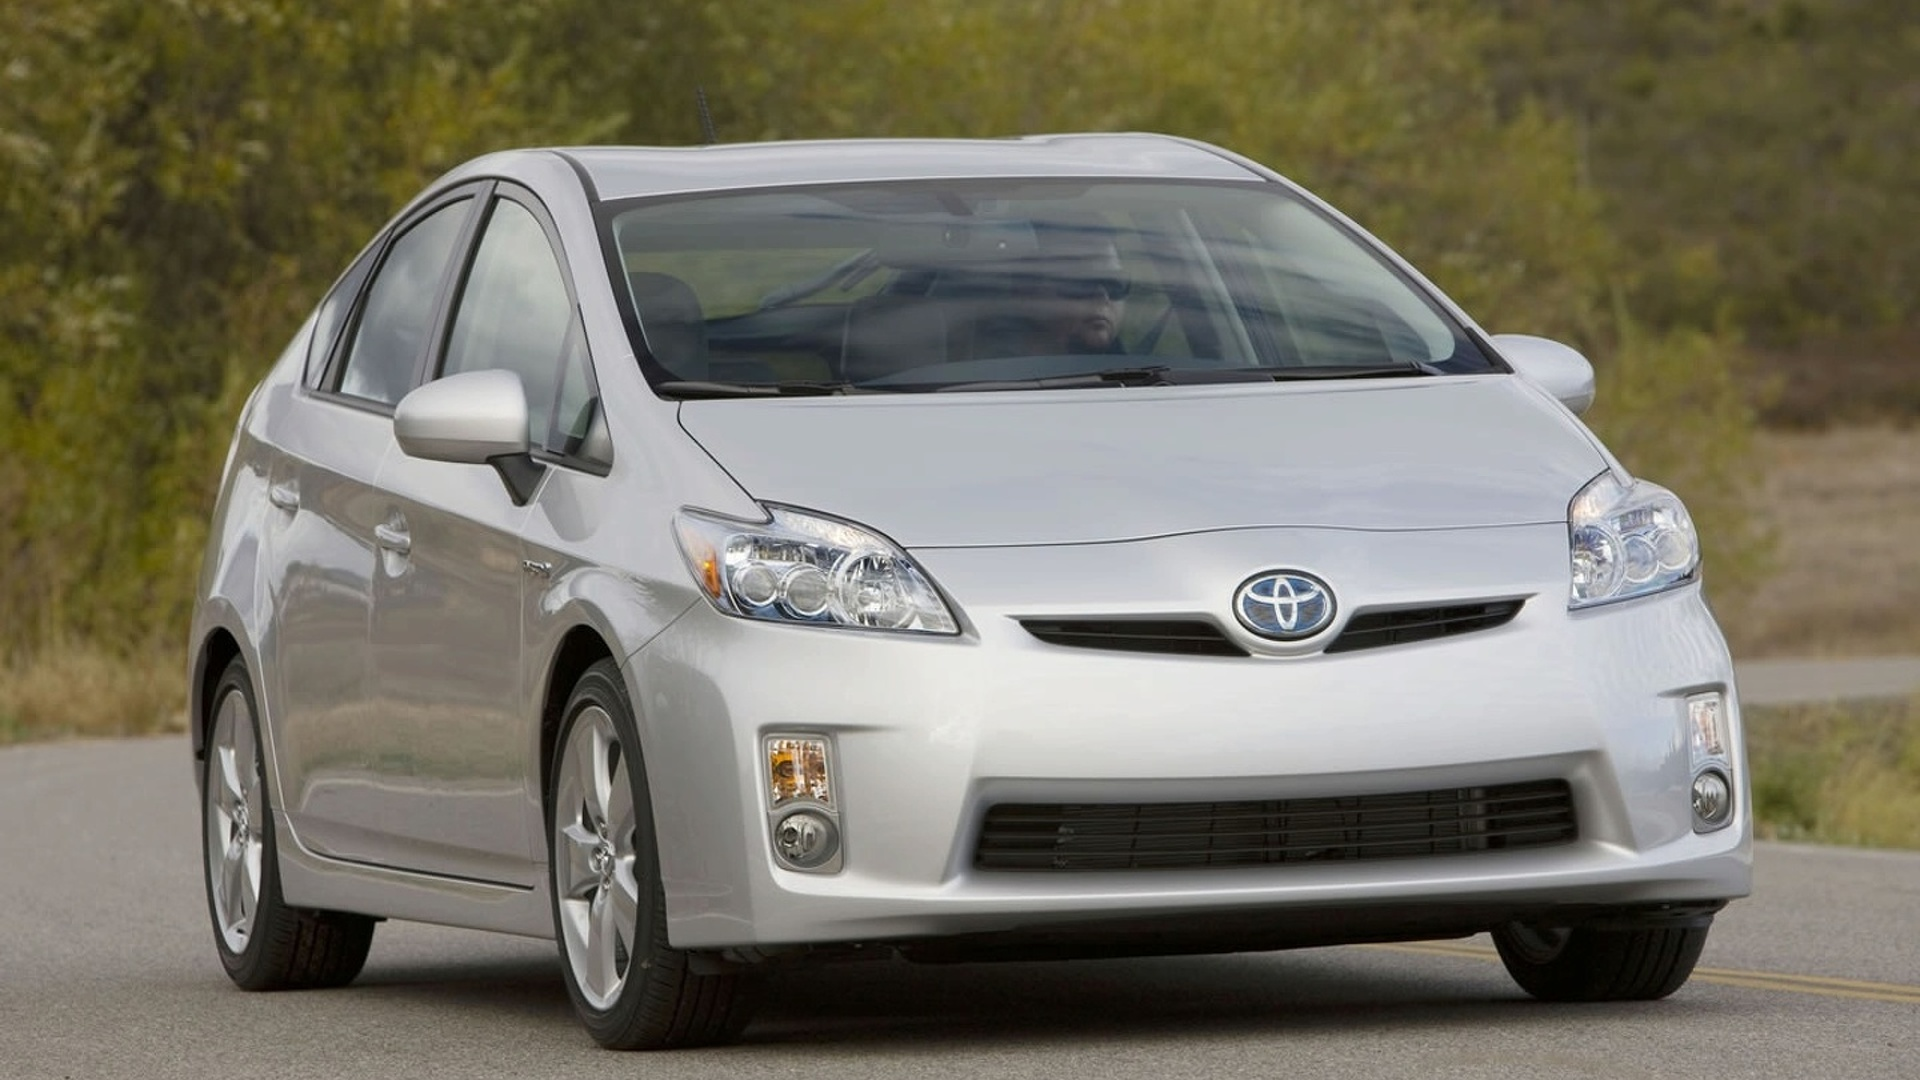 Toyota to Produce Cheaper Entry Level Prius to Compete with Honda Insight